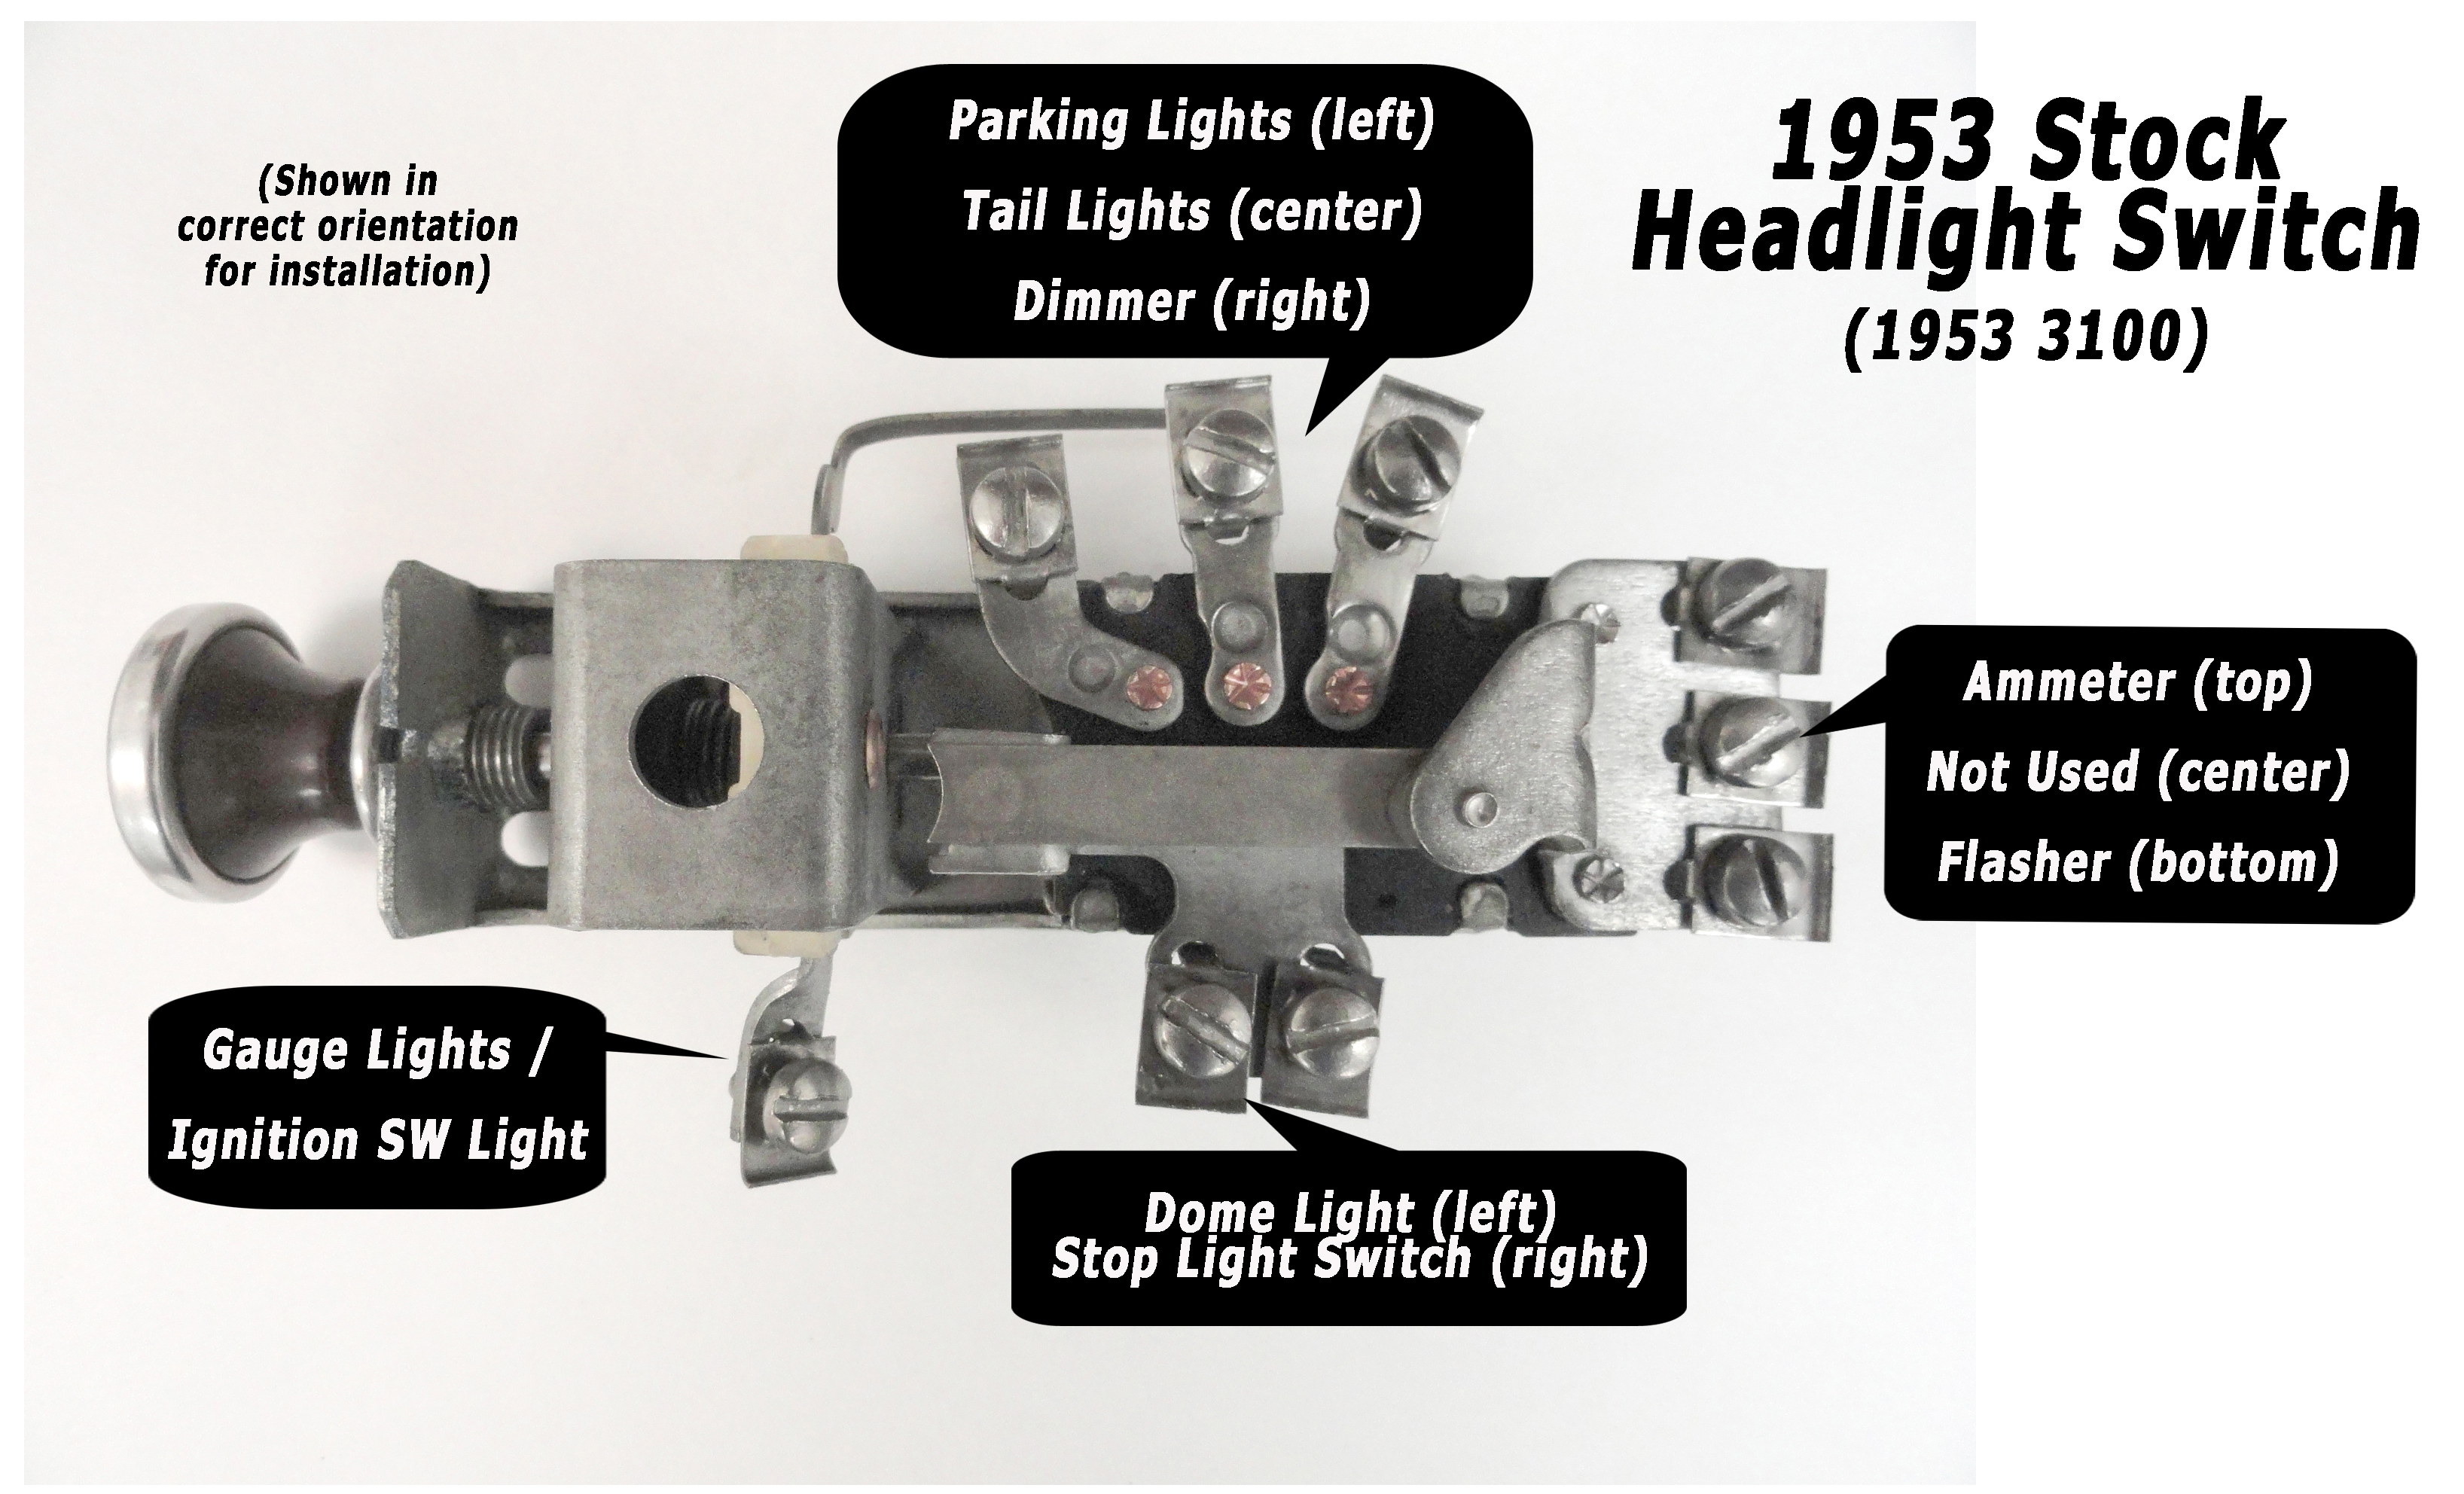 Headlight Switch Wiring Classic Parts Talk Instrument Cluster Diagram Click To Enlarge 1953 Headlightswitchdiagramlg